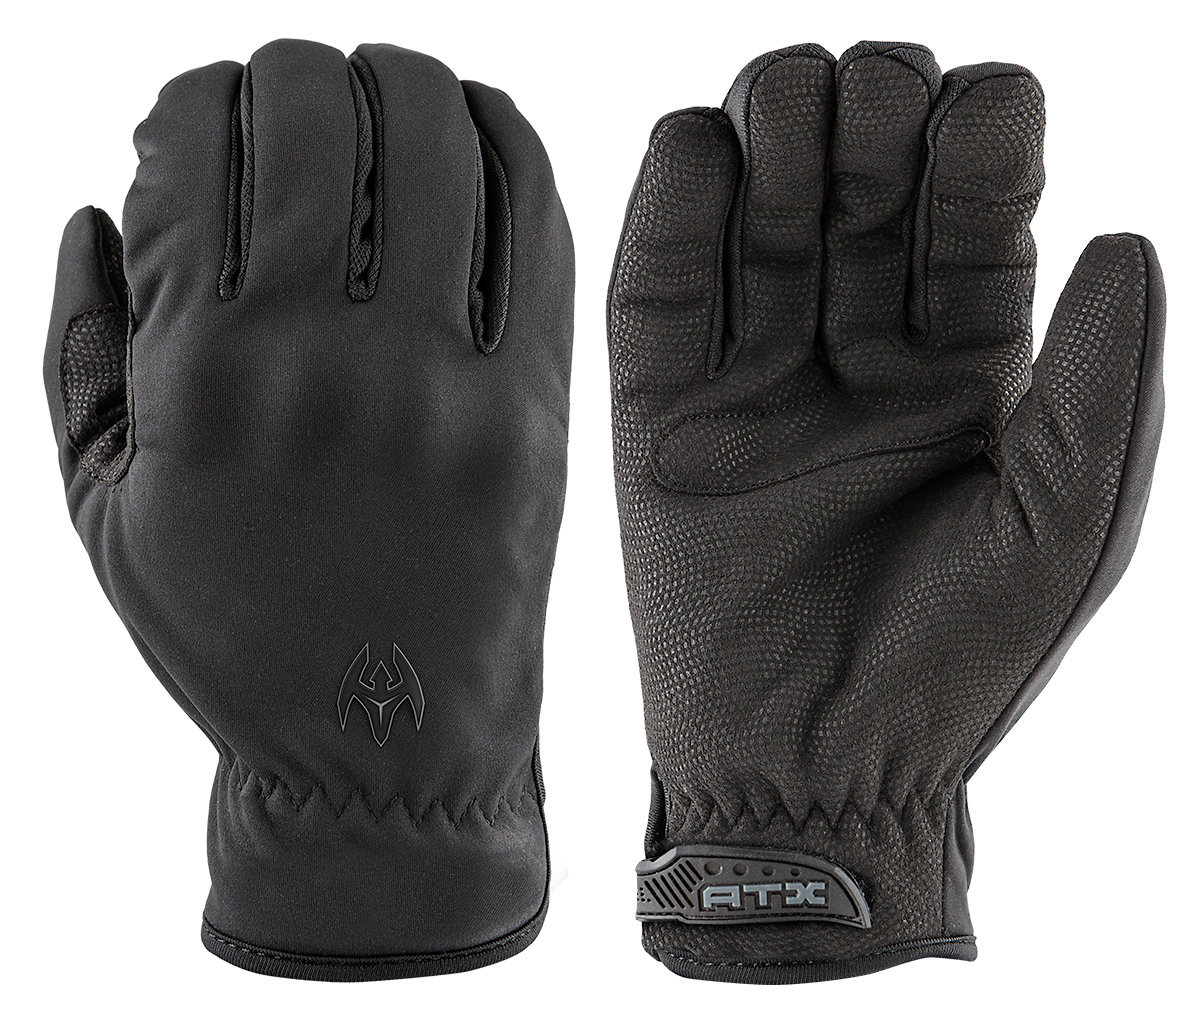 Winter Cut Resistant Patrol Gloves w/ Kevlar® Palm ATX150